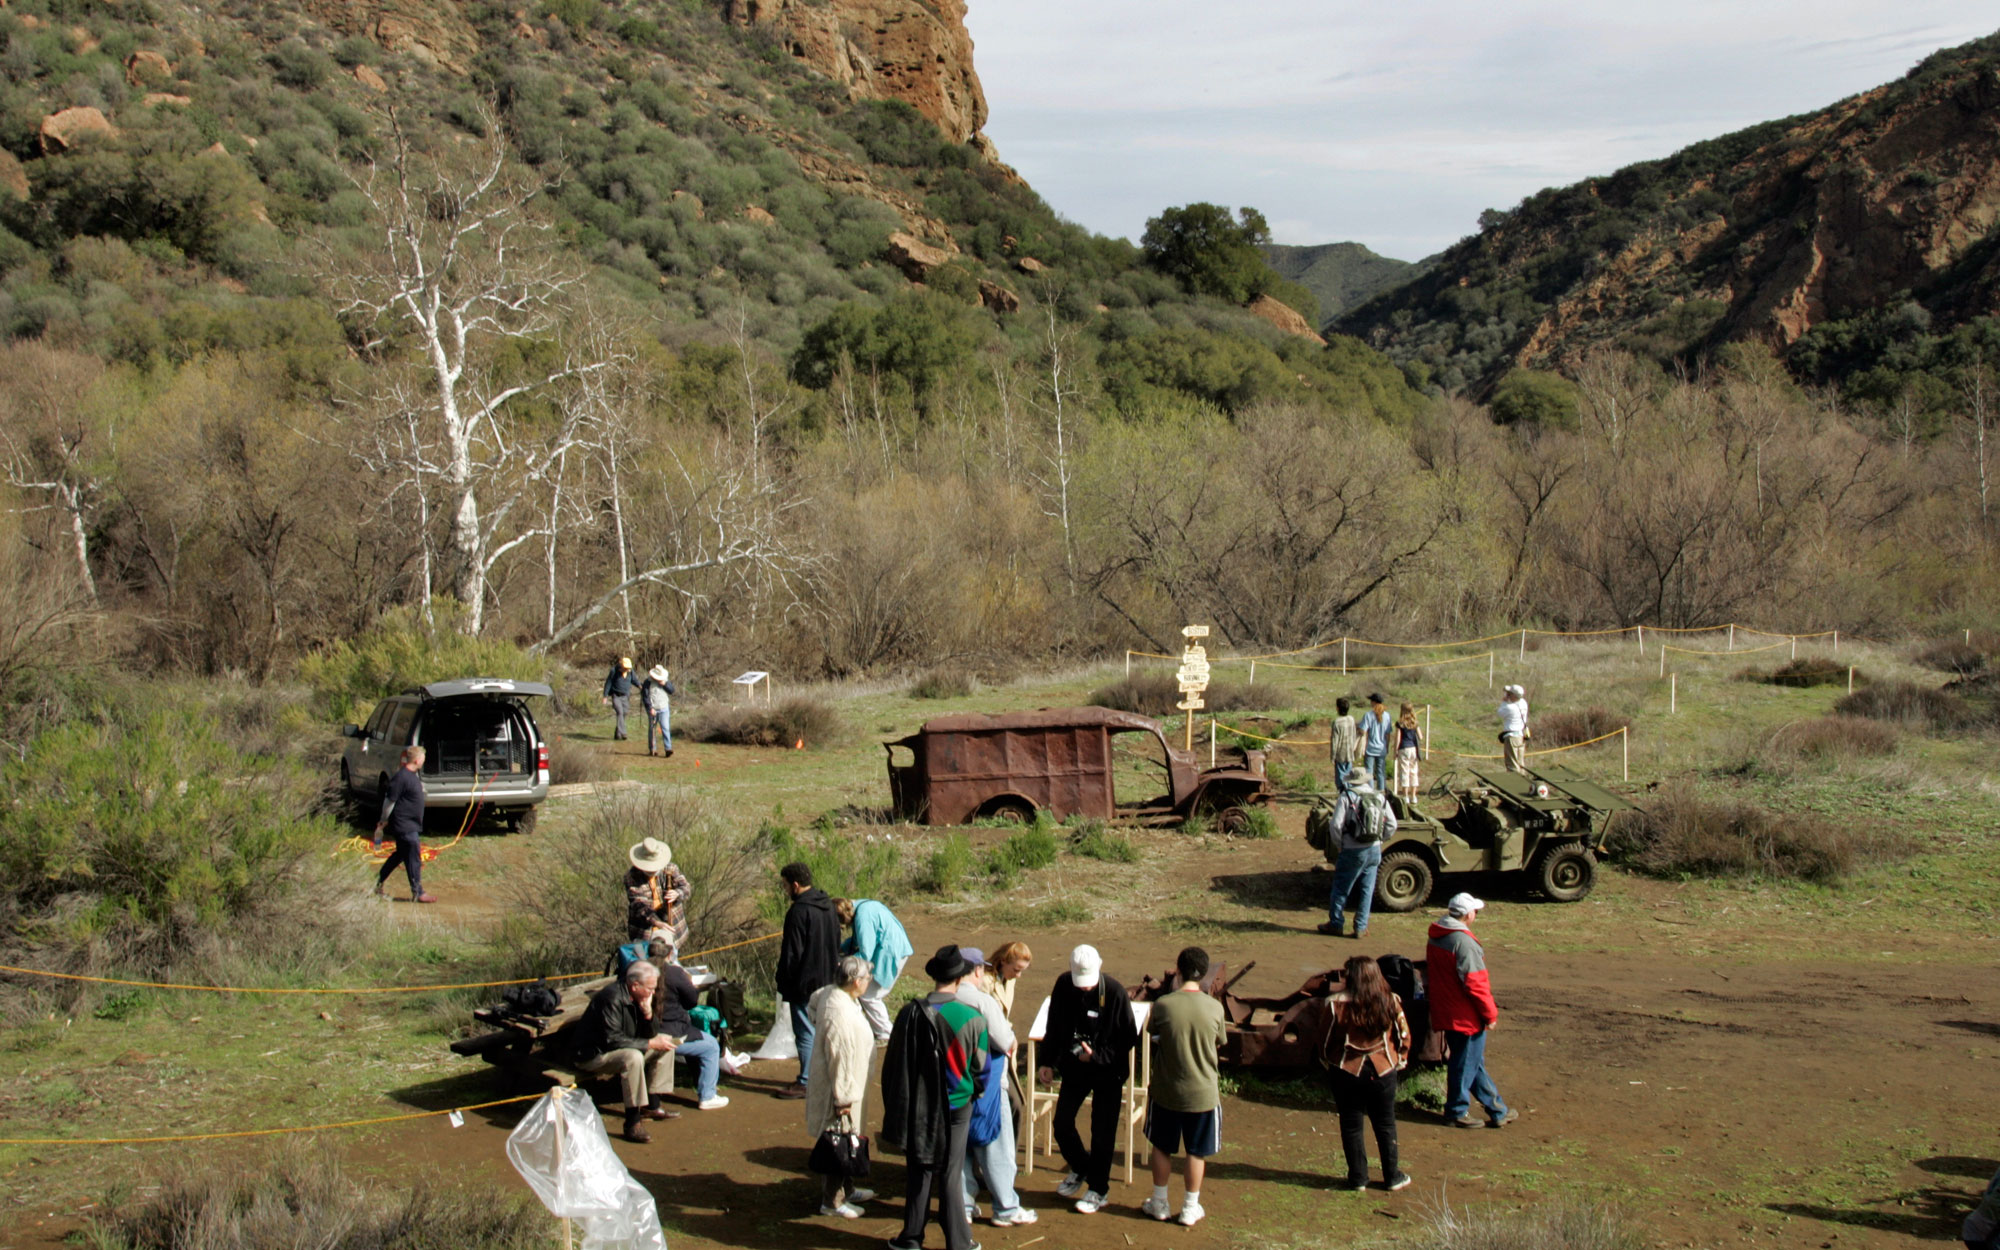 Abandoned Movie Sets You Can Still Visit: M*A*S*H Signs in Malibu Creek State Park, California